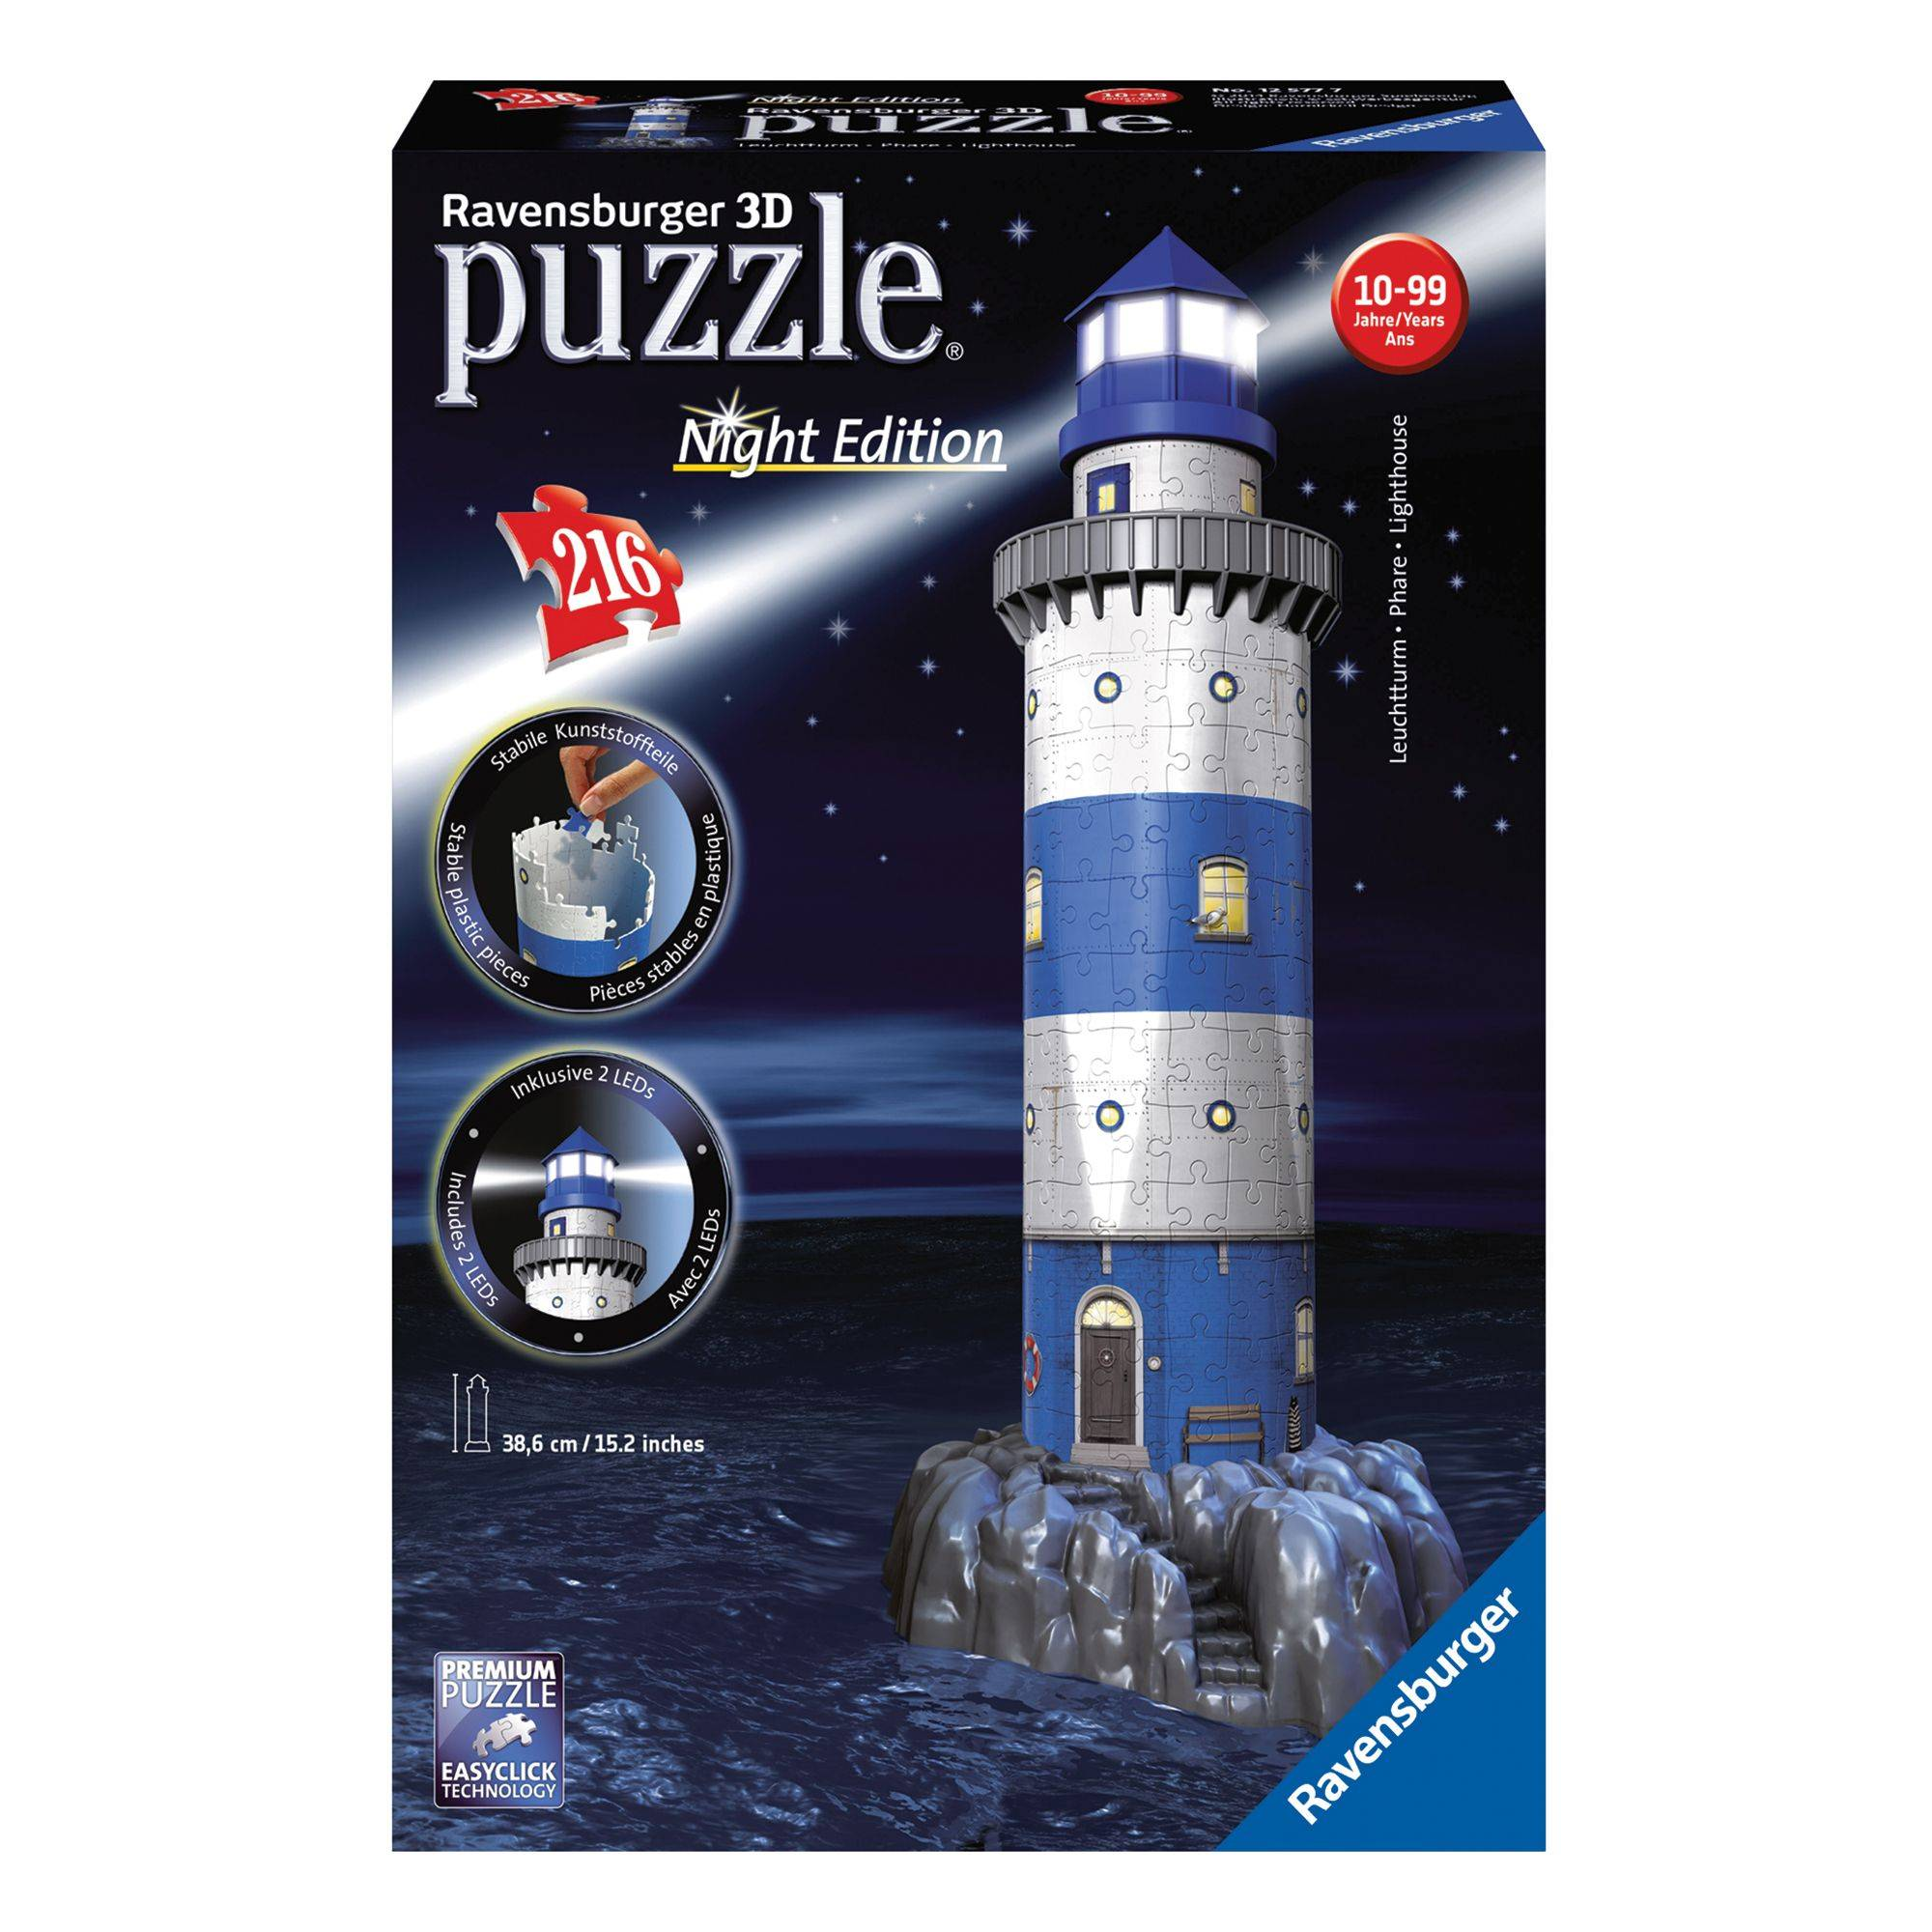 Ravensburger Night Edition Lighthouse 216 Piece 3D Puzzle